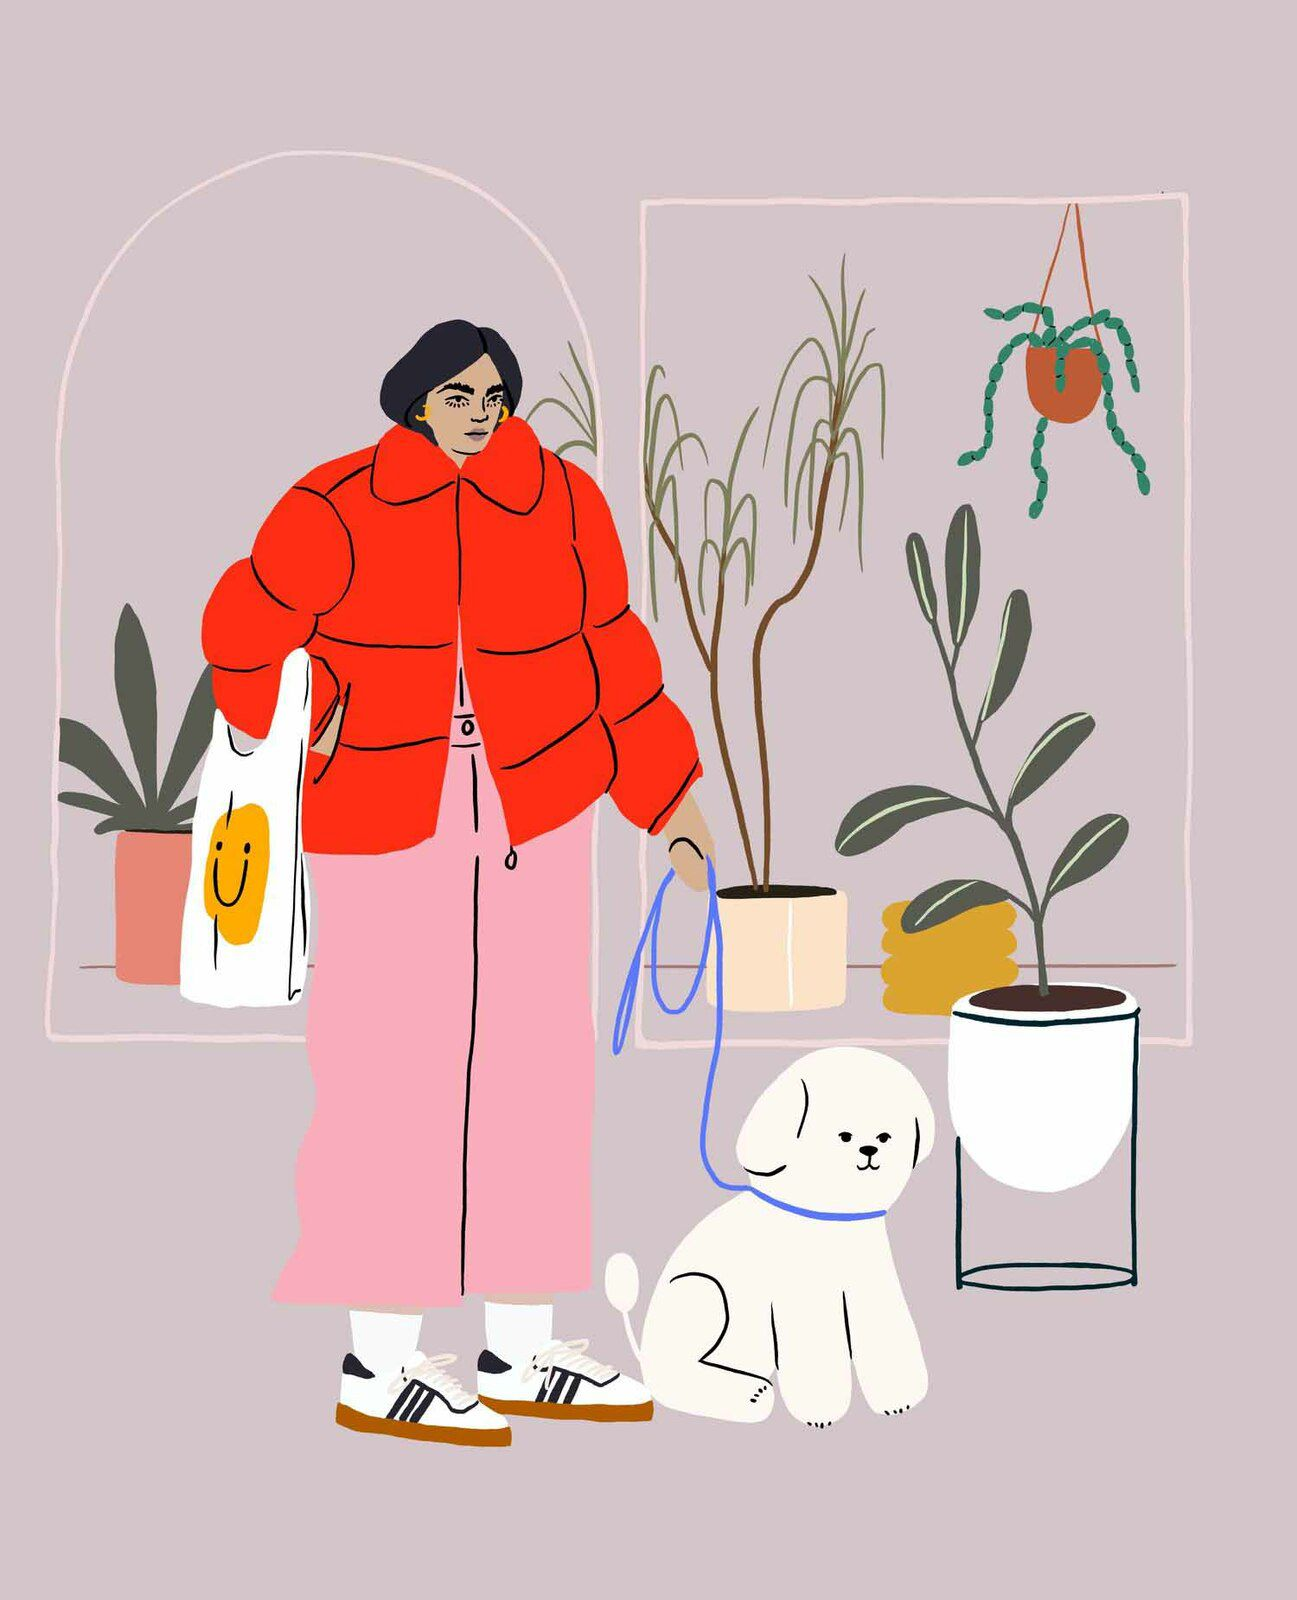 STEPHANIE DEANGELIS ILLUSTRATIONS TO DISCOVER